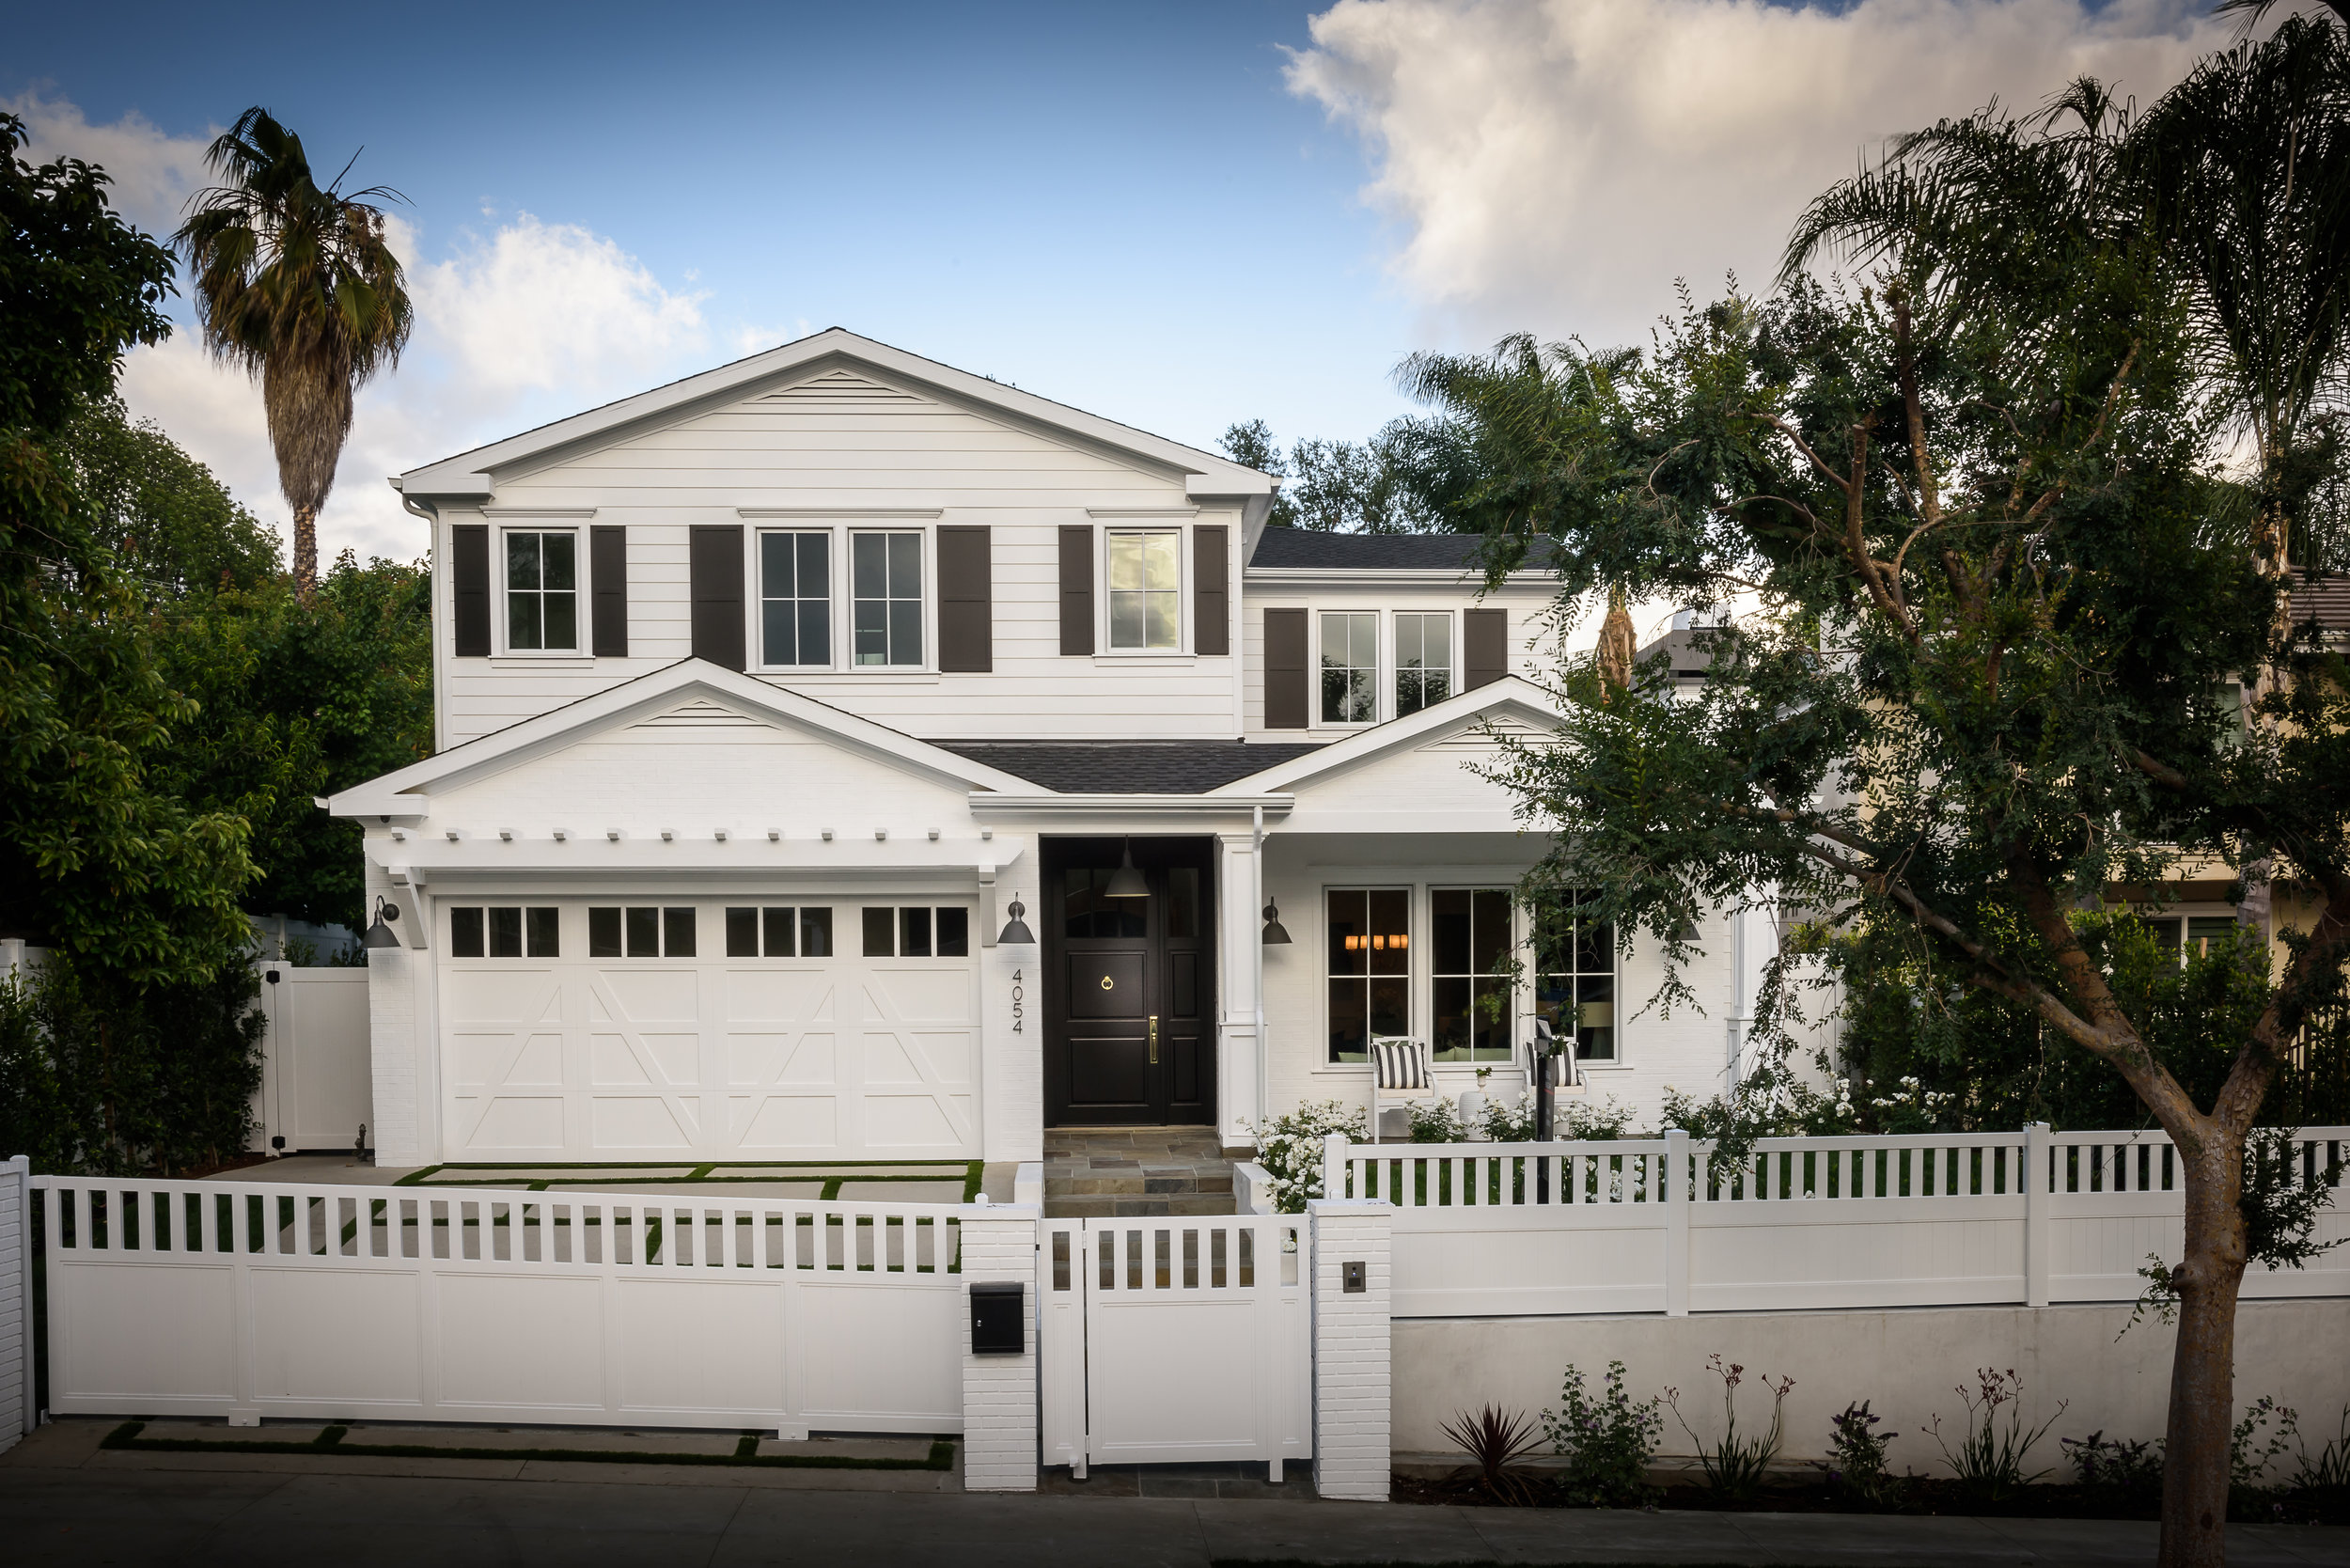 BECK AVENUE | STUDIO CITY   Only the highest standard of quality craftsmanship was utilized when designing this gated Cape Cod traditional style home. Unparalleled in elegance, high-end finishes boasts as you both enter and exit from either side of this private and secure property.